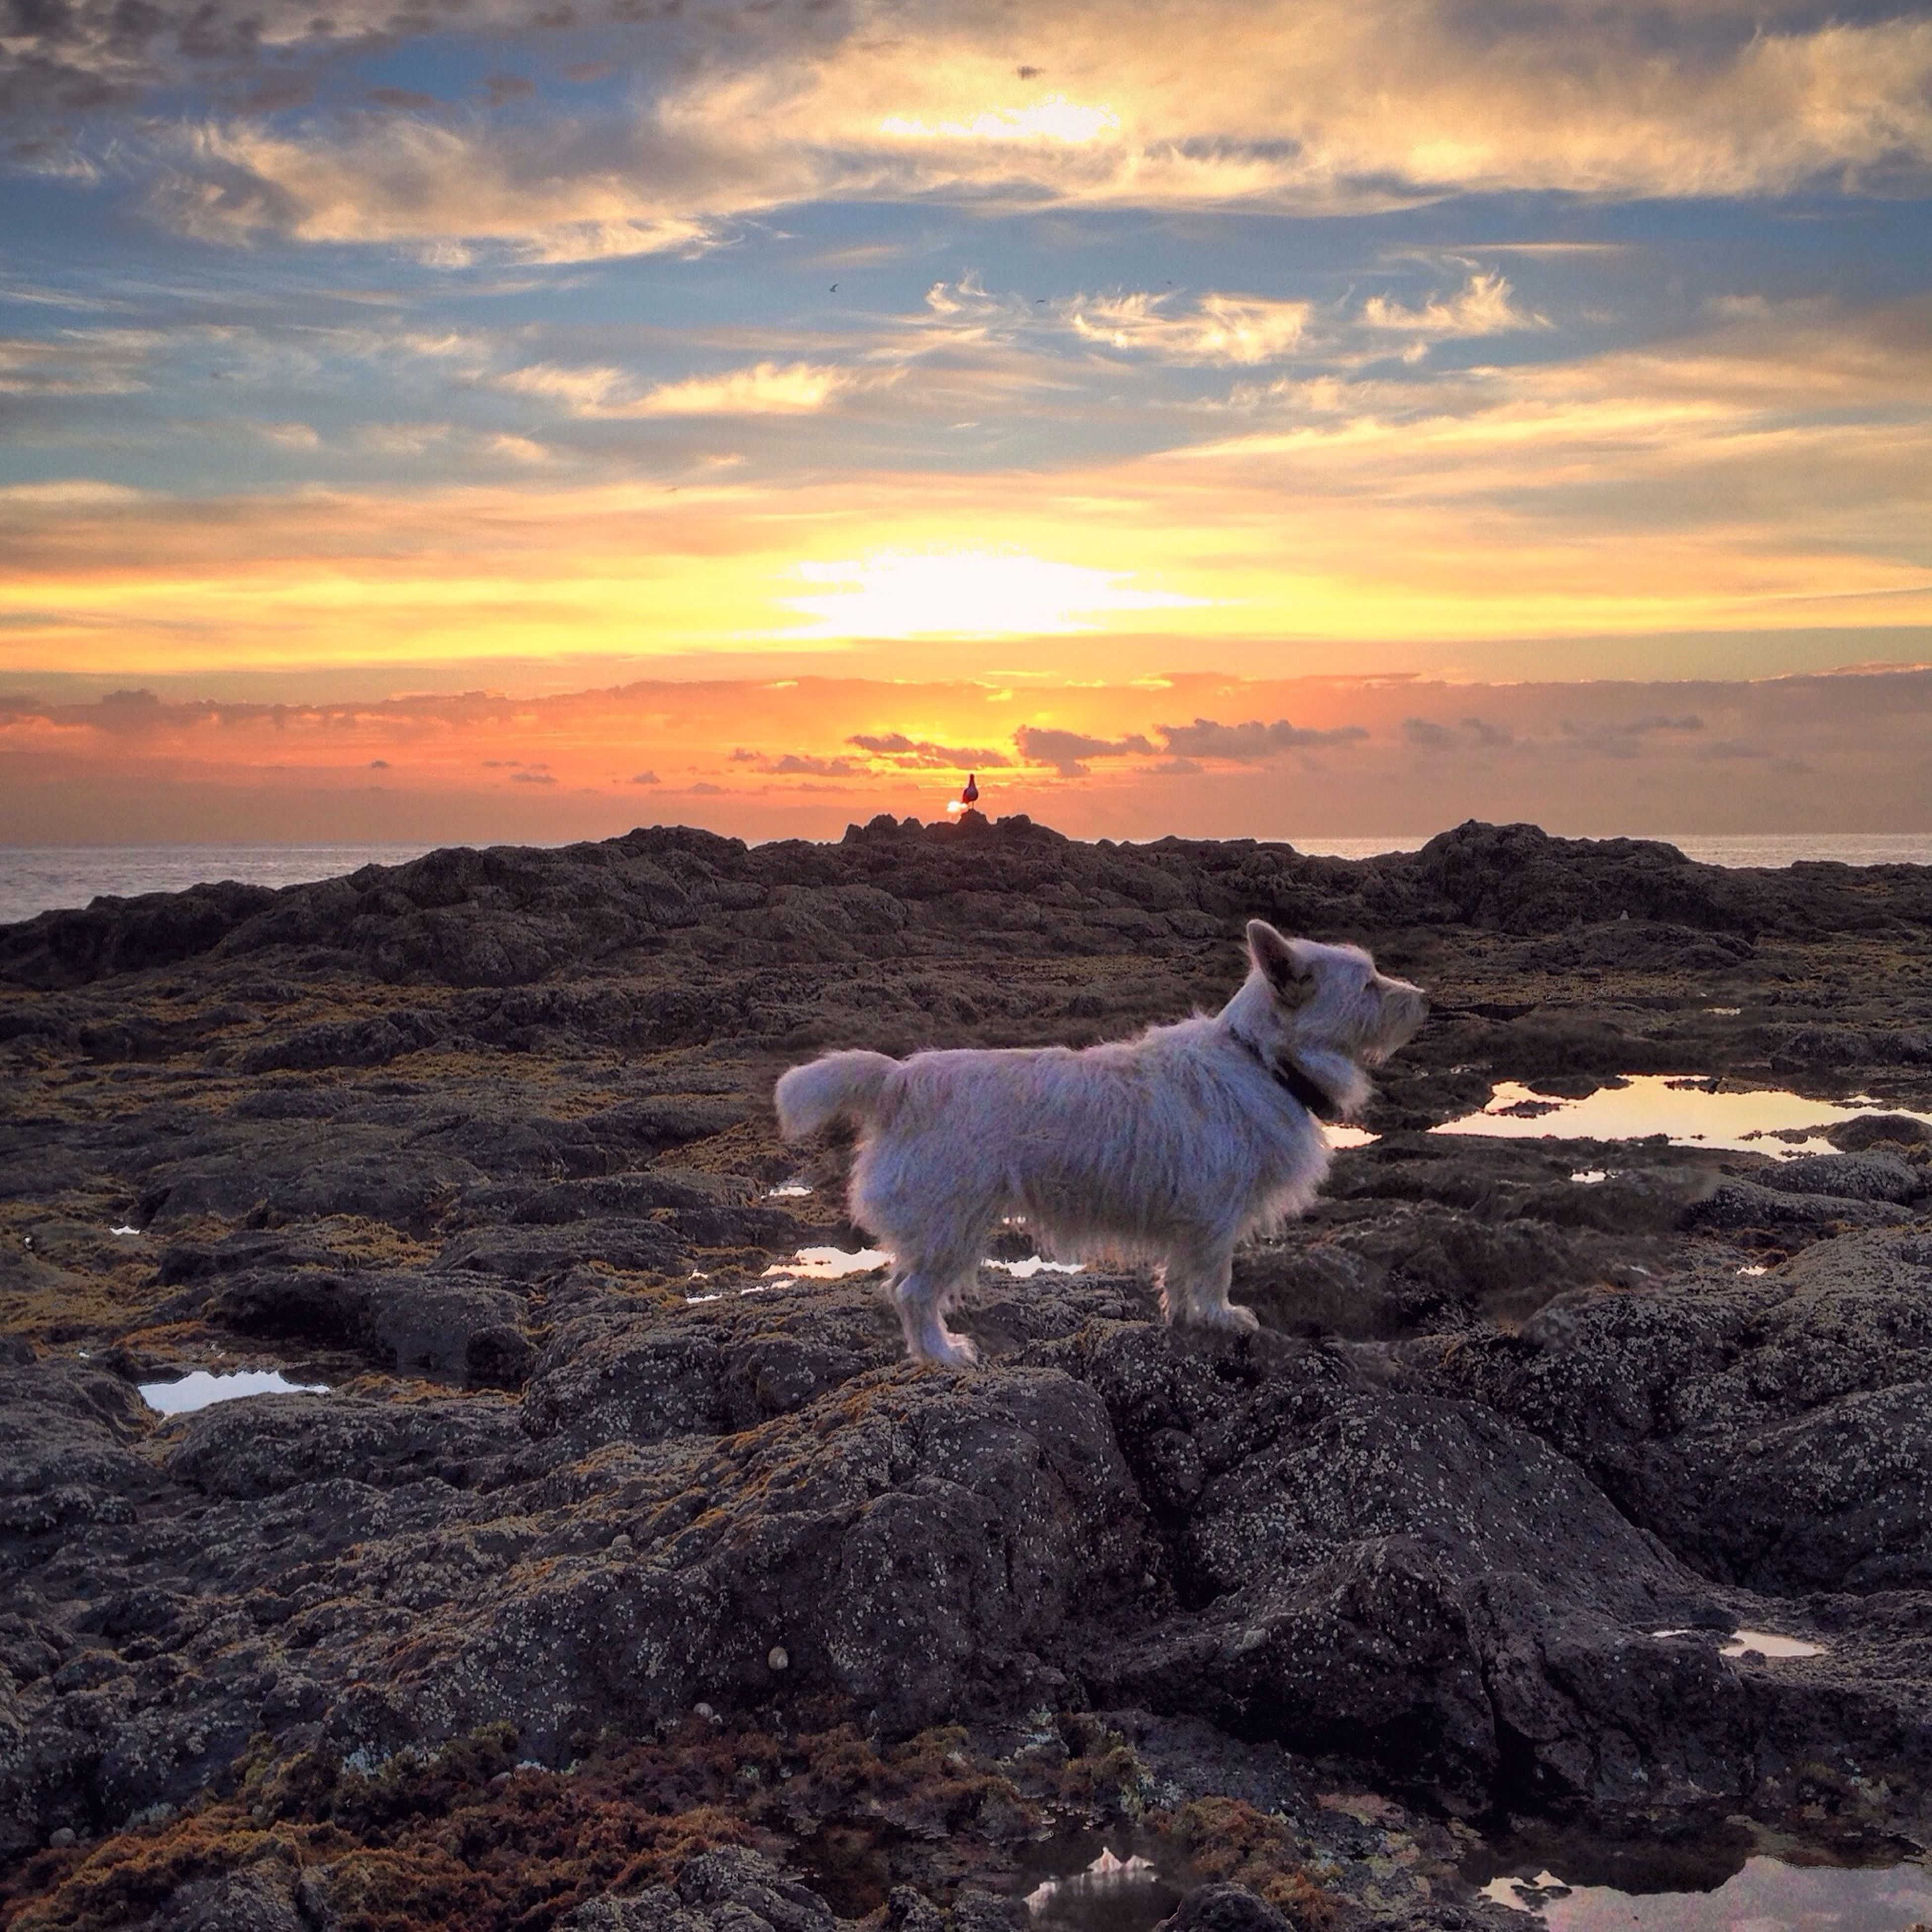 animal themes, sunset, mammal, domestic animals, one animal, sky, cloud - sky, nature, water, beauty in nature, standing, rock - object, scenics, tranquil scene, orange color, sunlight, sun, outdoors, tranquility, full length